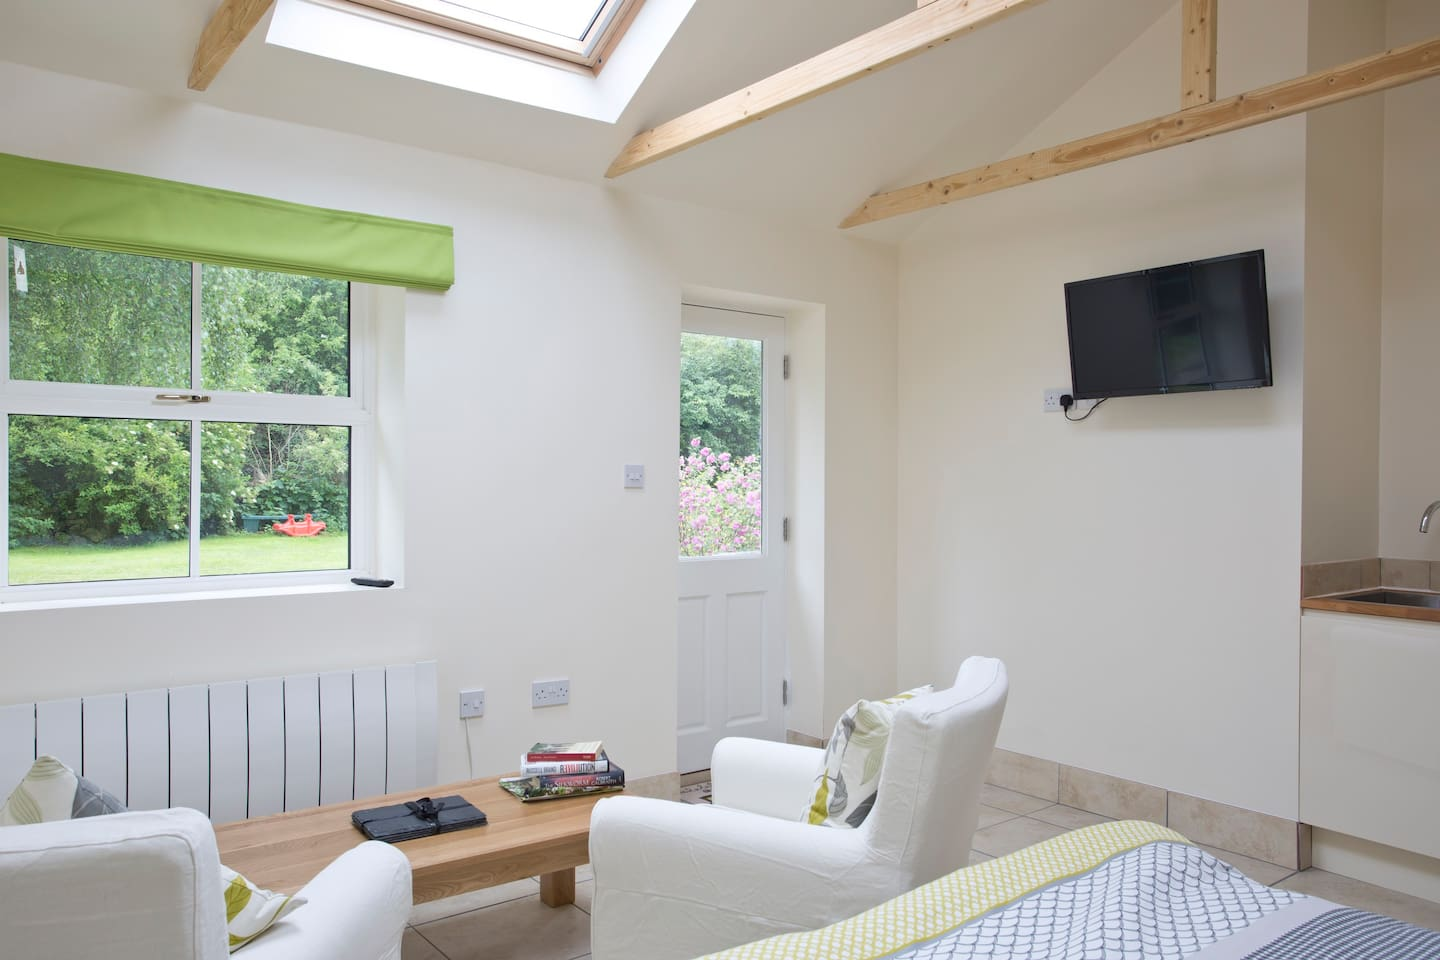 Design house york -  Design House Fulford York Self Contained Modern Studio Flats For Rent In York United Kingdom